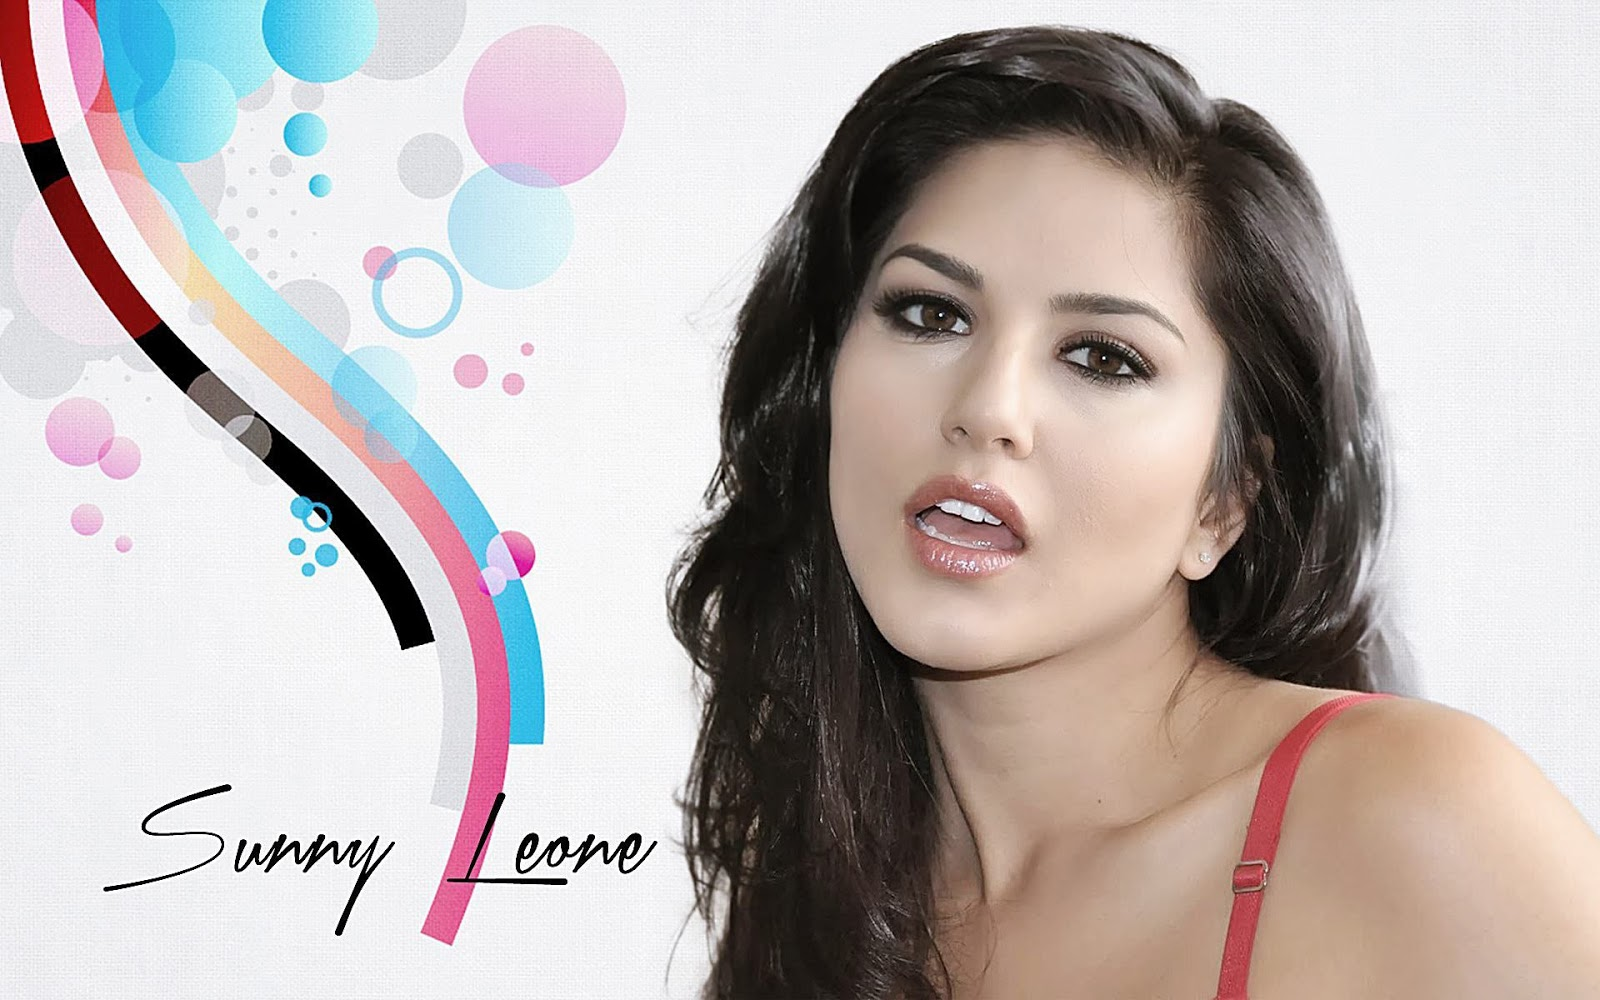 The best wallpapper 51 sanny leones hd wallpaper photos and pictures images wallpaper hd - Sunny leone full hd wallpaper ...